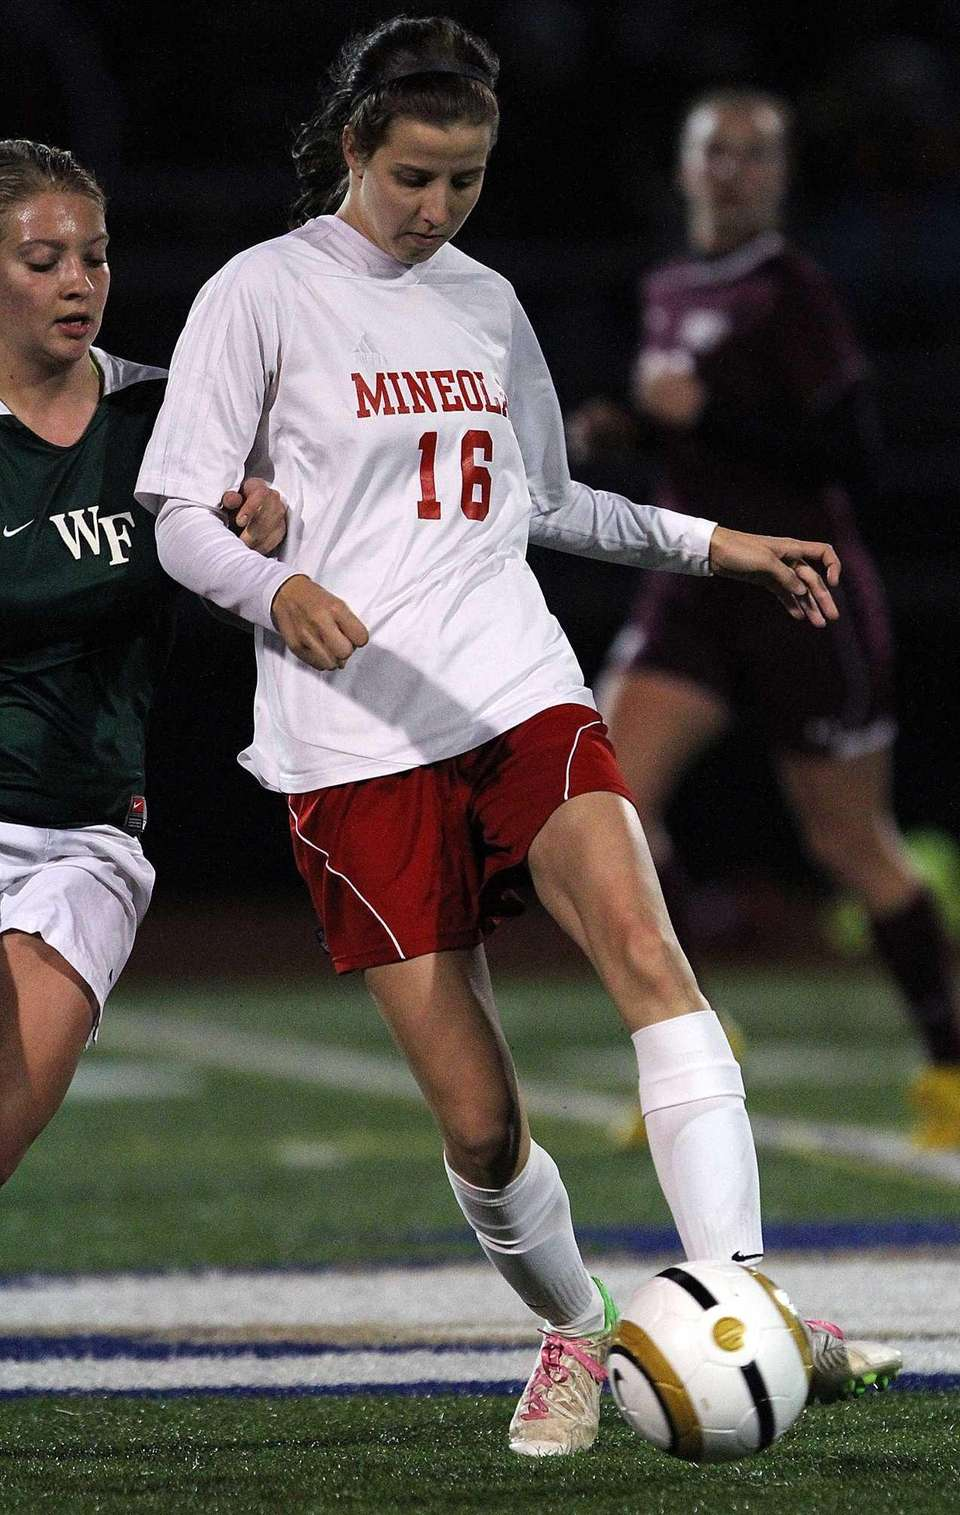 Mineola's Nina Ribero fights for the ball during